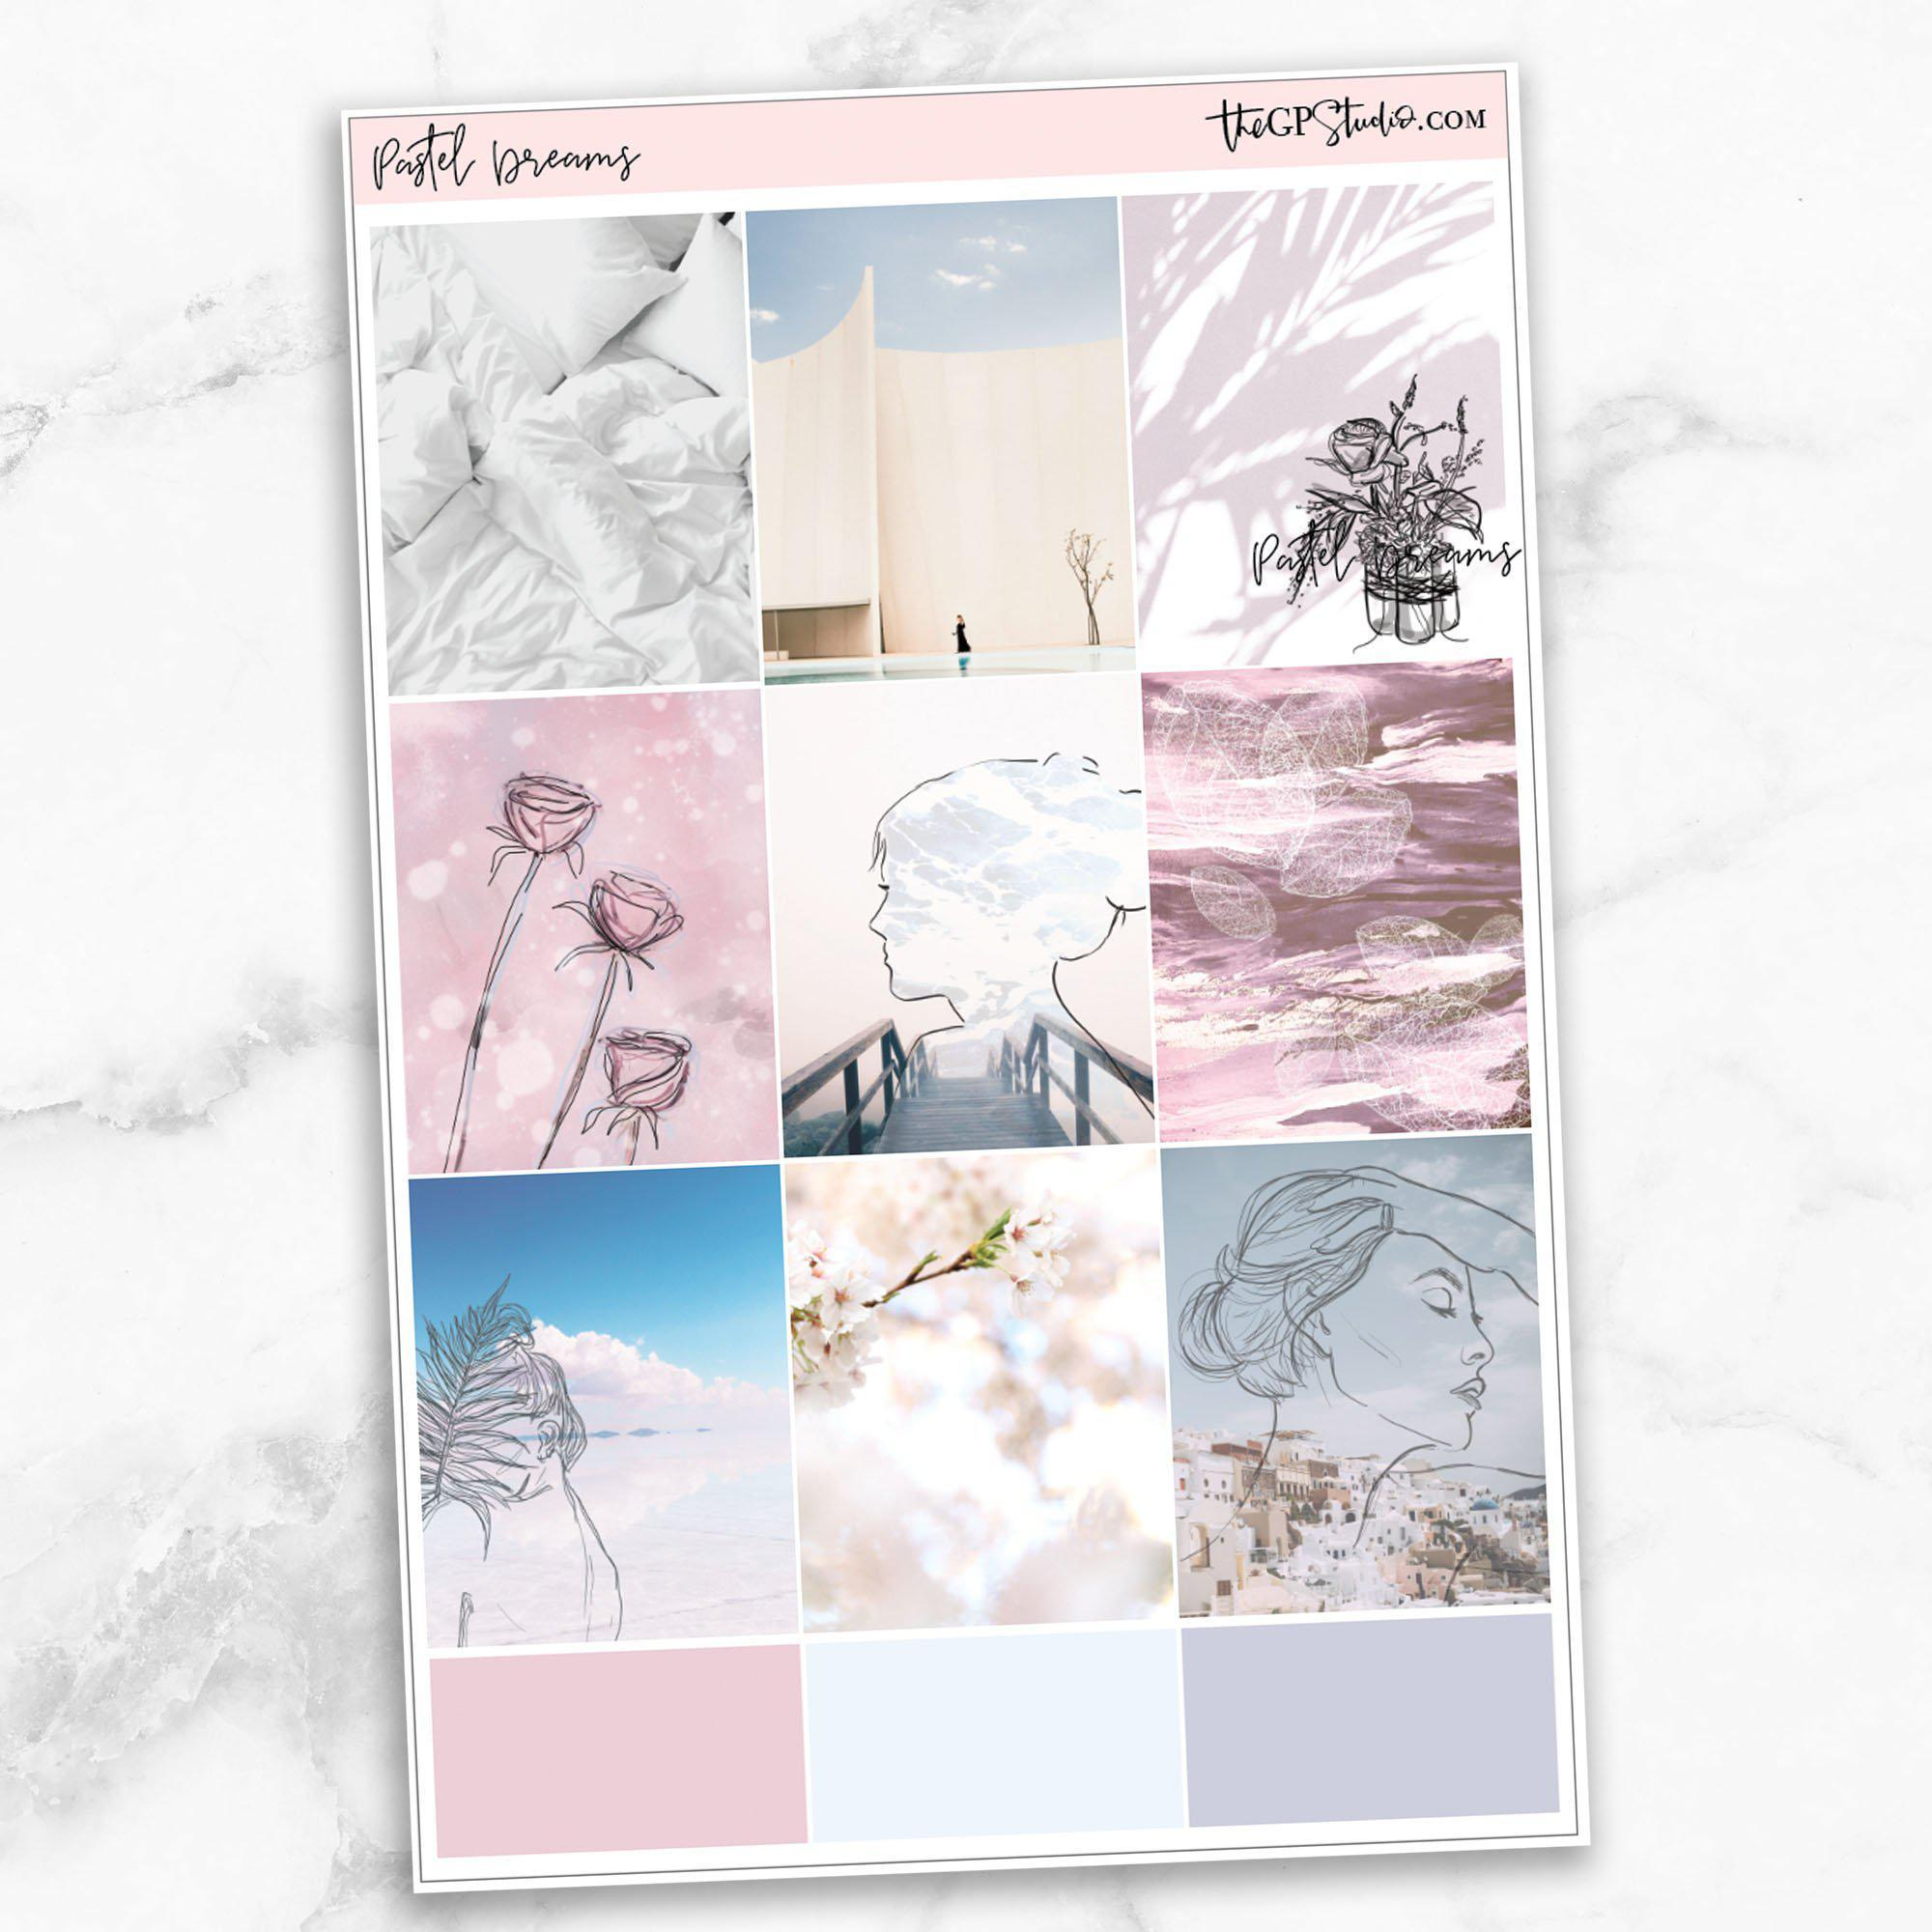 PASTEL DREAMS Full Boxes Planner Stickers-The GP Studio